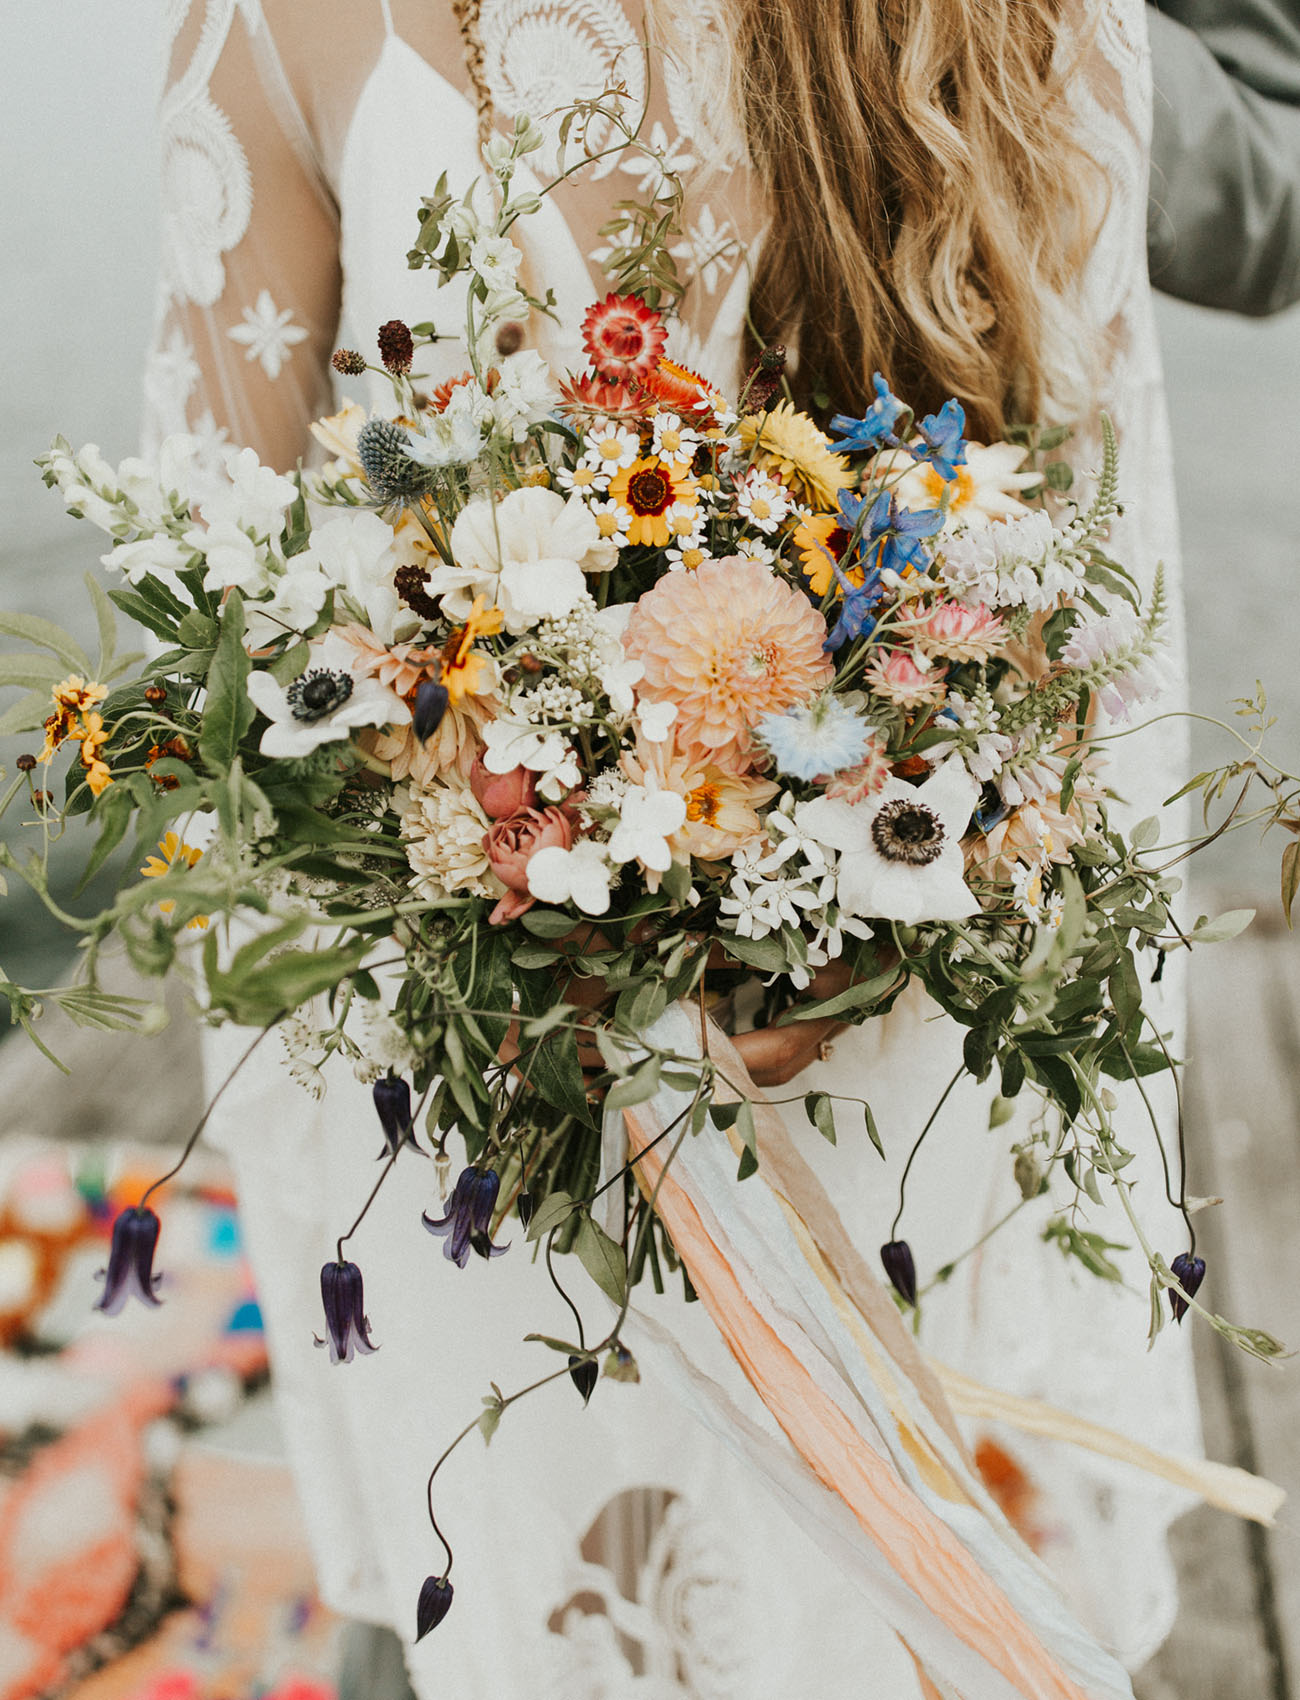 Her bouquet was a wildflower one, with bright and neutral blooms and lots of greenery